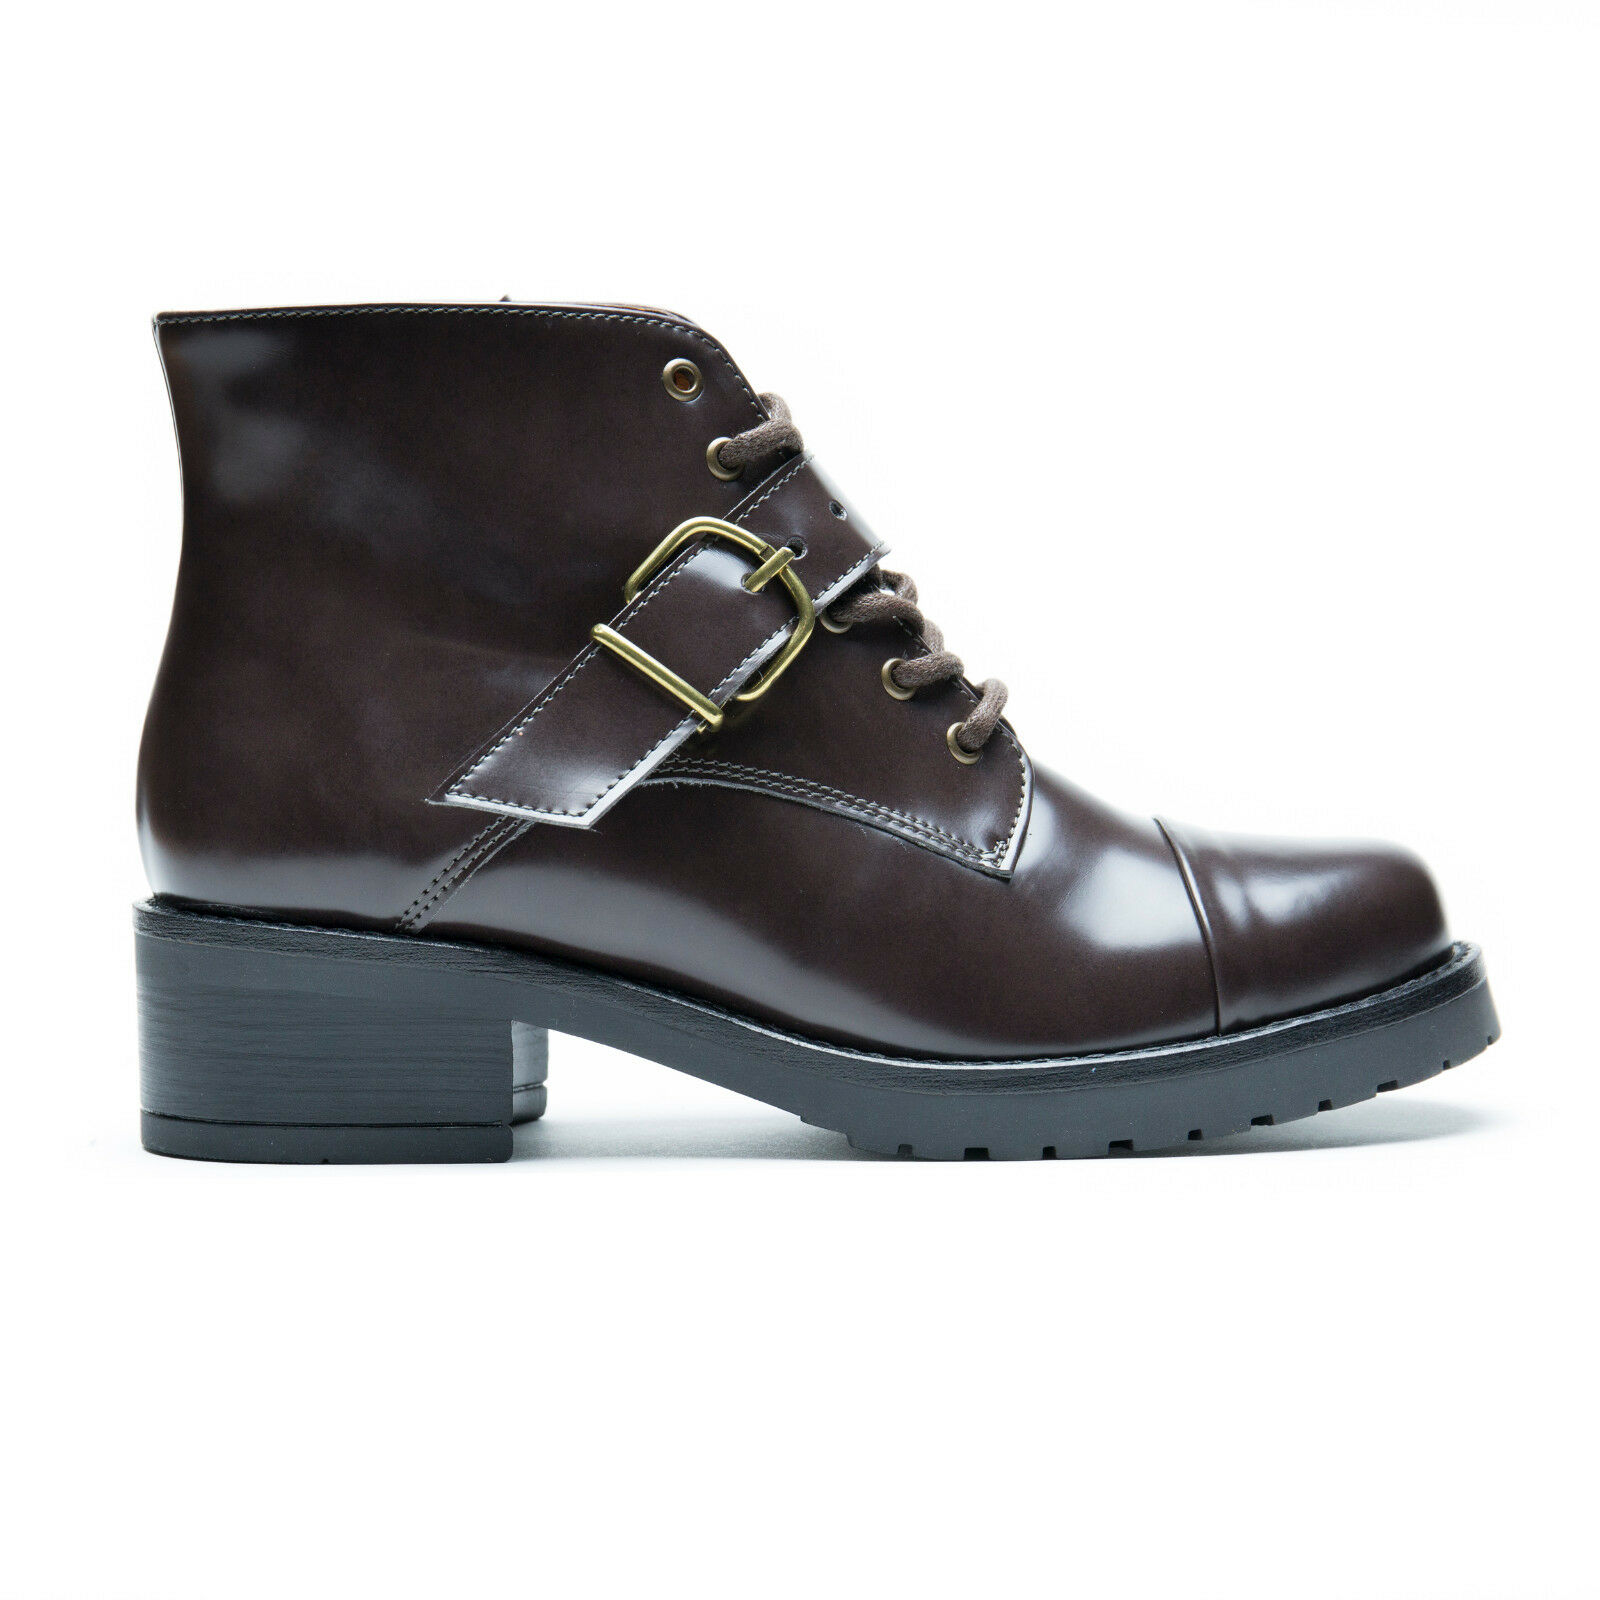 Woman vegan ankle Stiefel Lace-Up Hook Strap Block Heel Non-Skid Sole Cap Round Toe